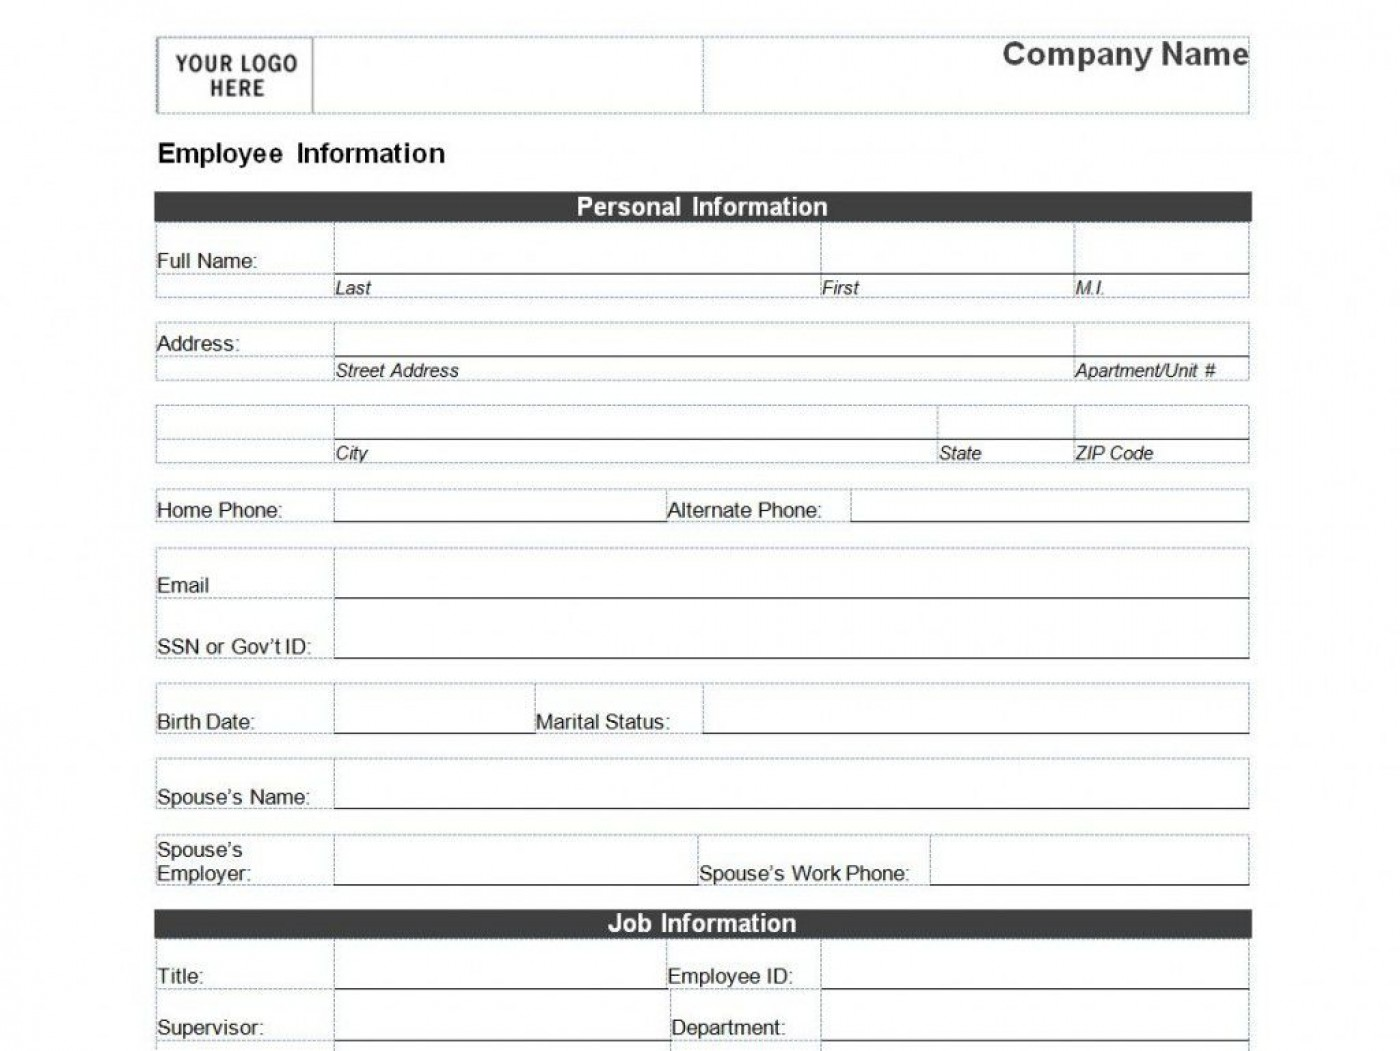 008 Remarkable Client Information Form Template Excel Design 1400